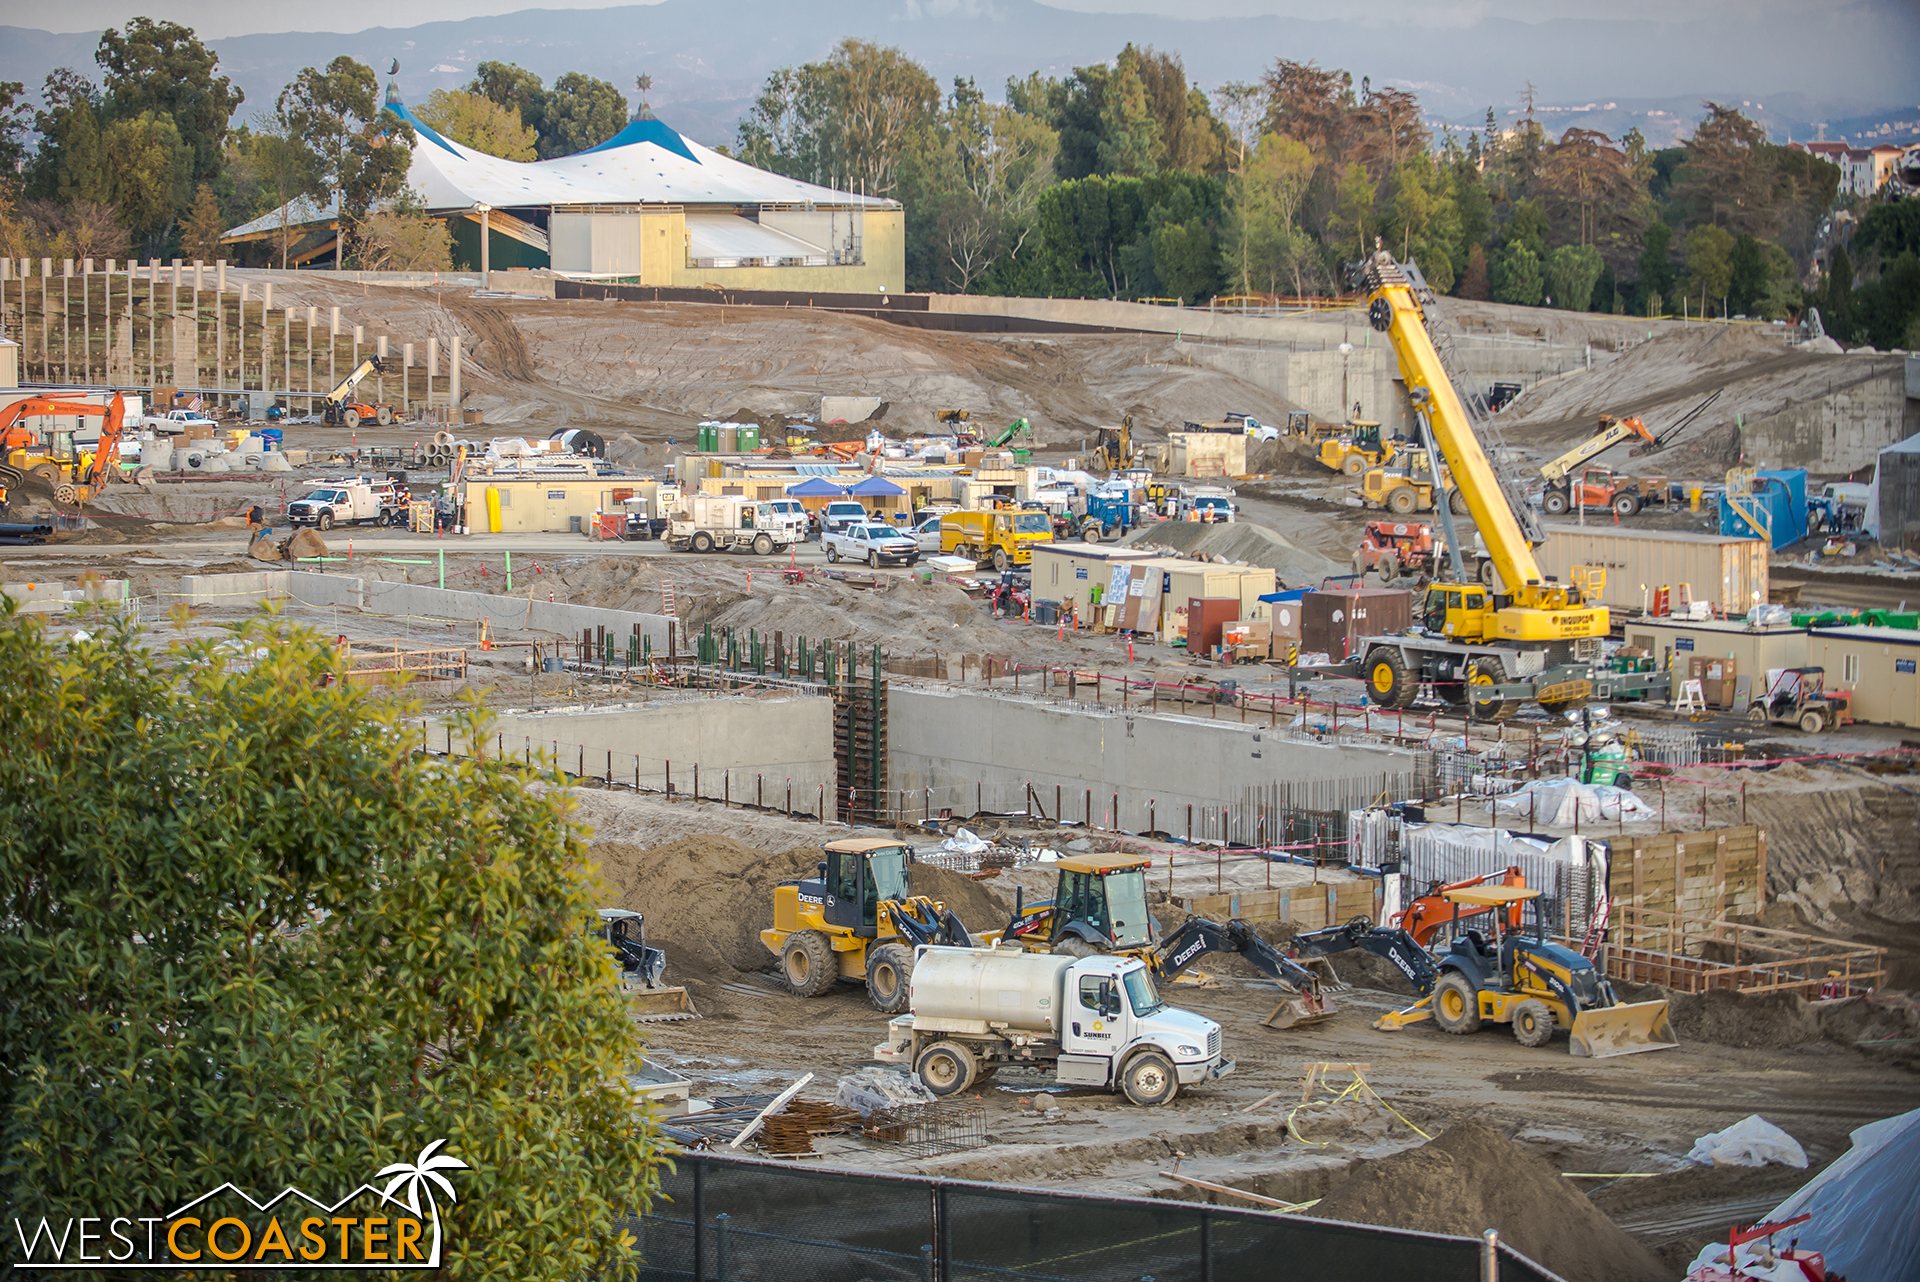 Here, we can see that giant pit that they've been digging with concrete retaining walls.